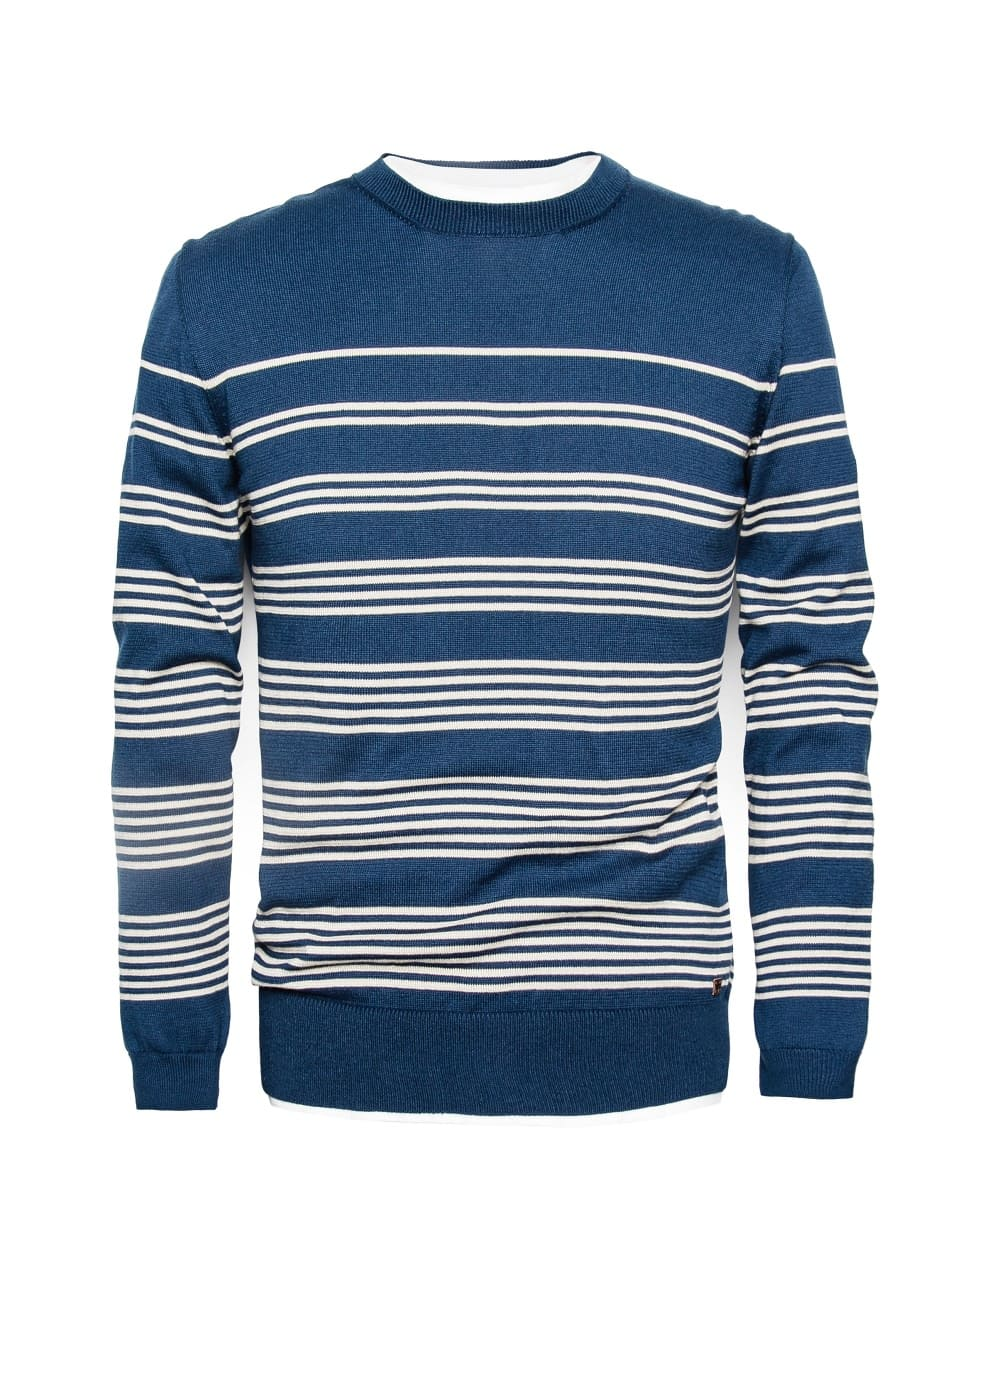 Striped cotton-blend sweater | MANGO